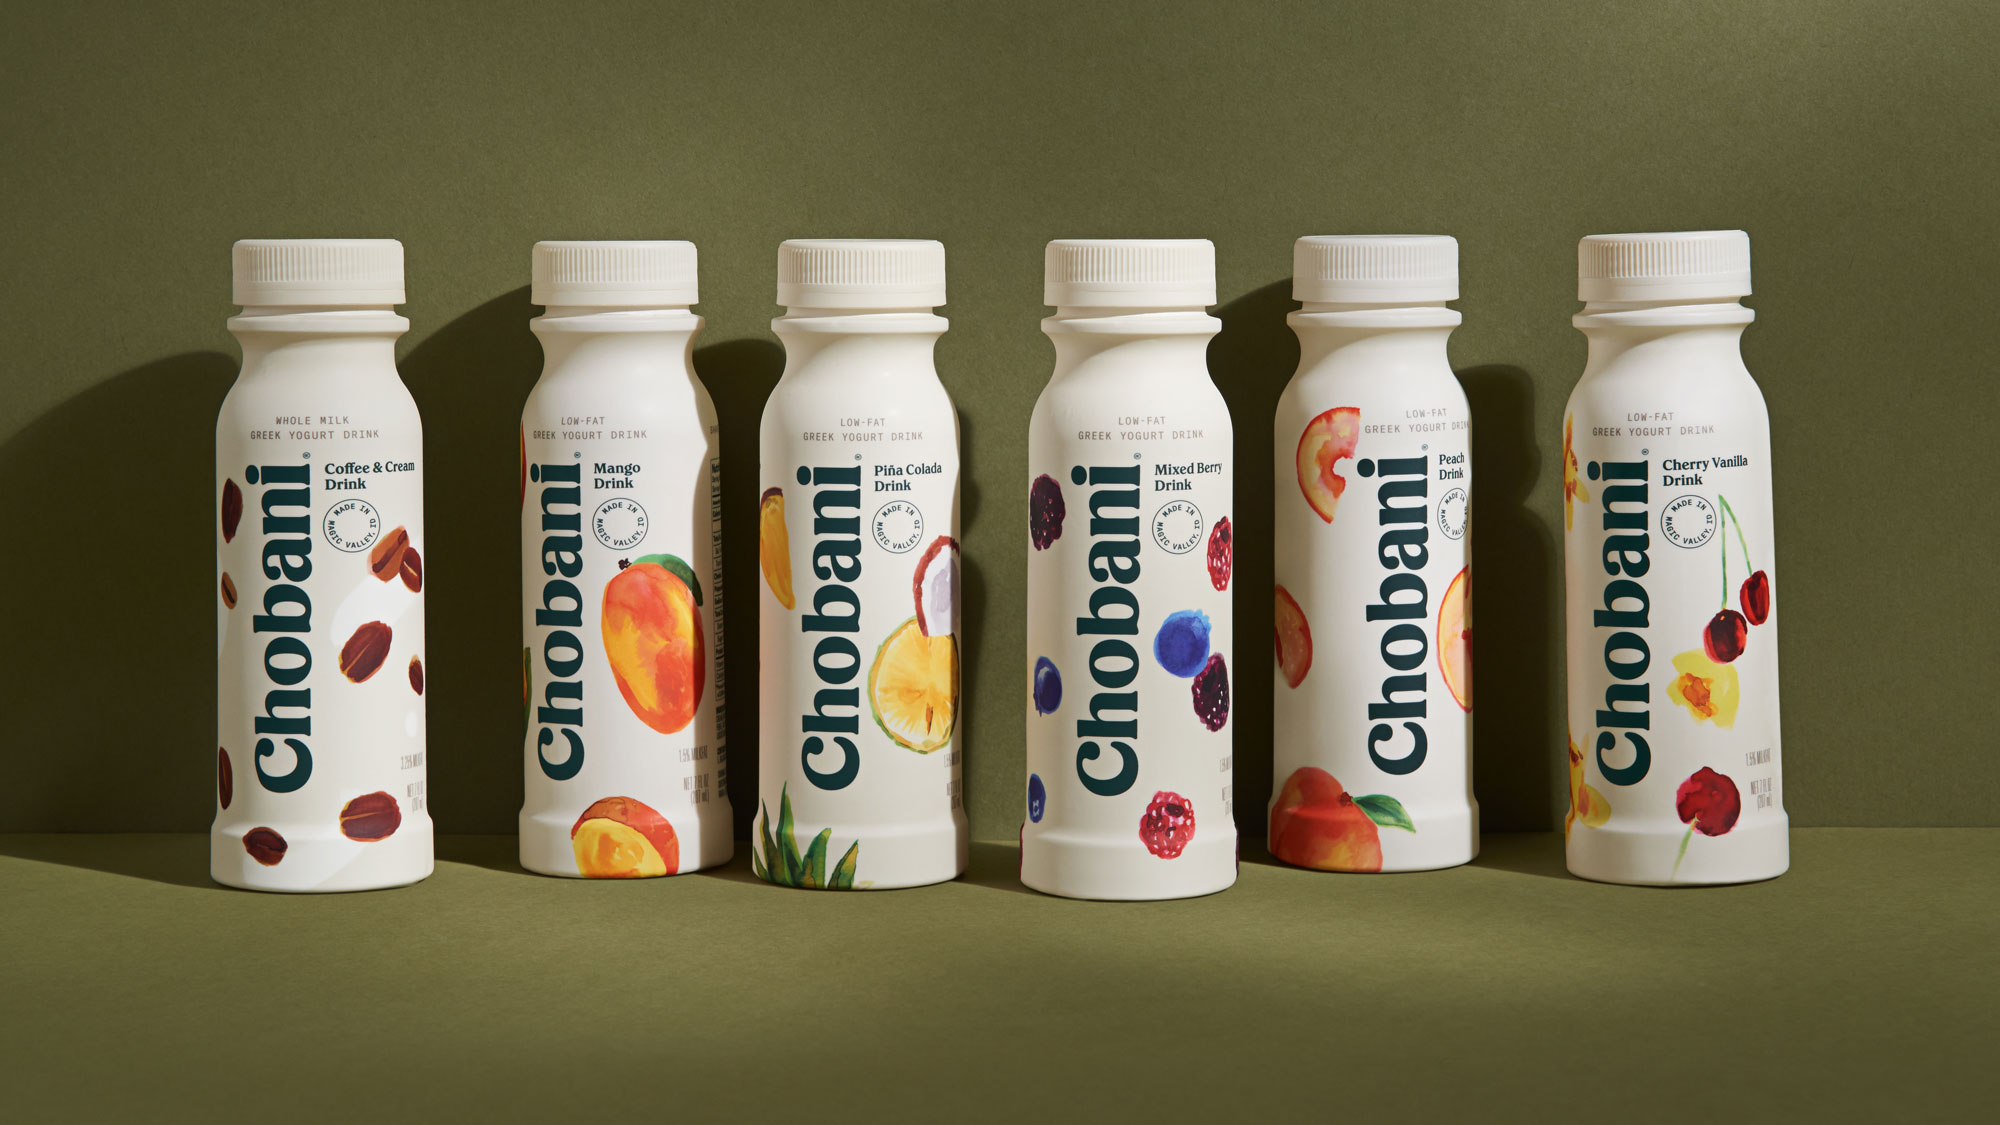 Chobani® Greek drink family